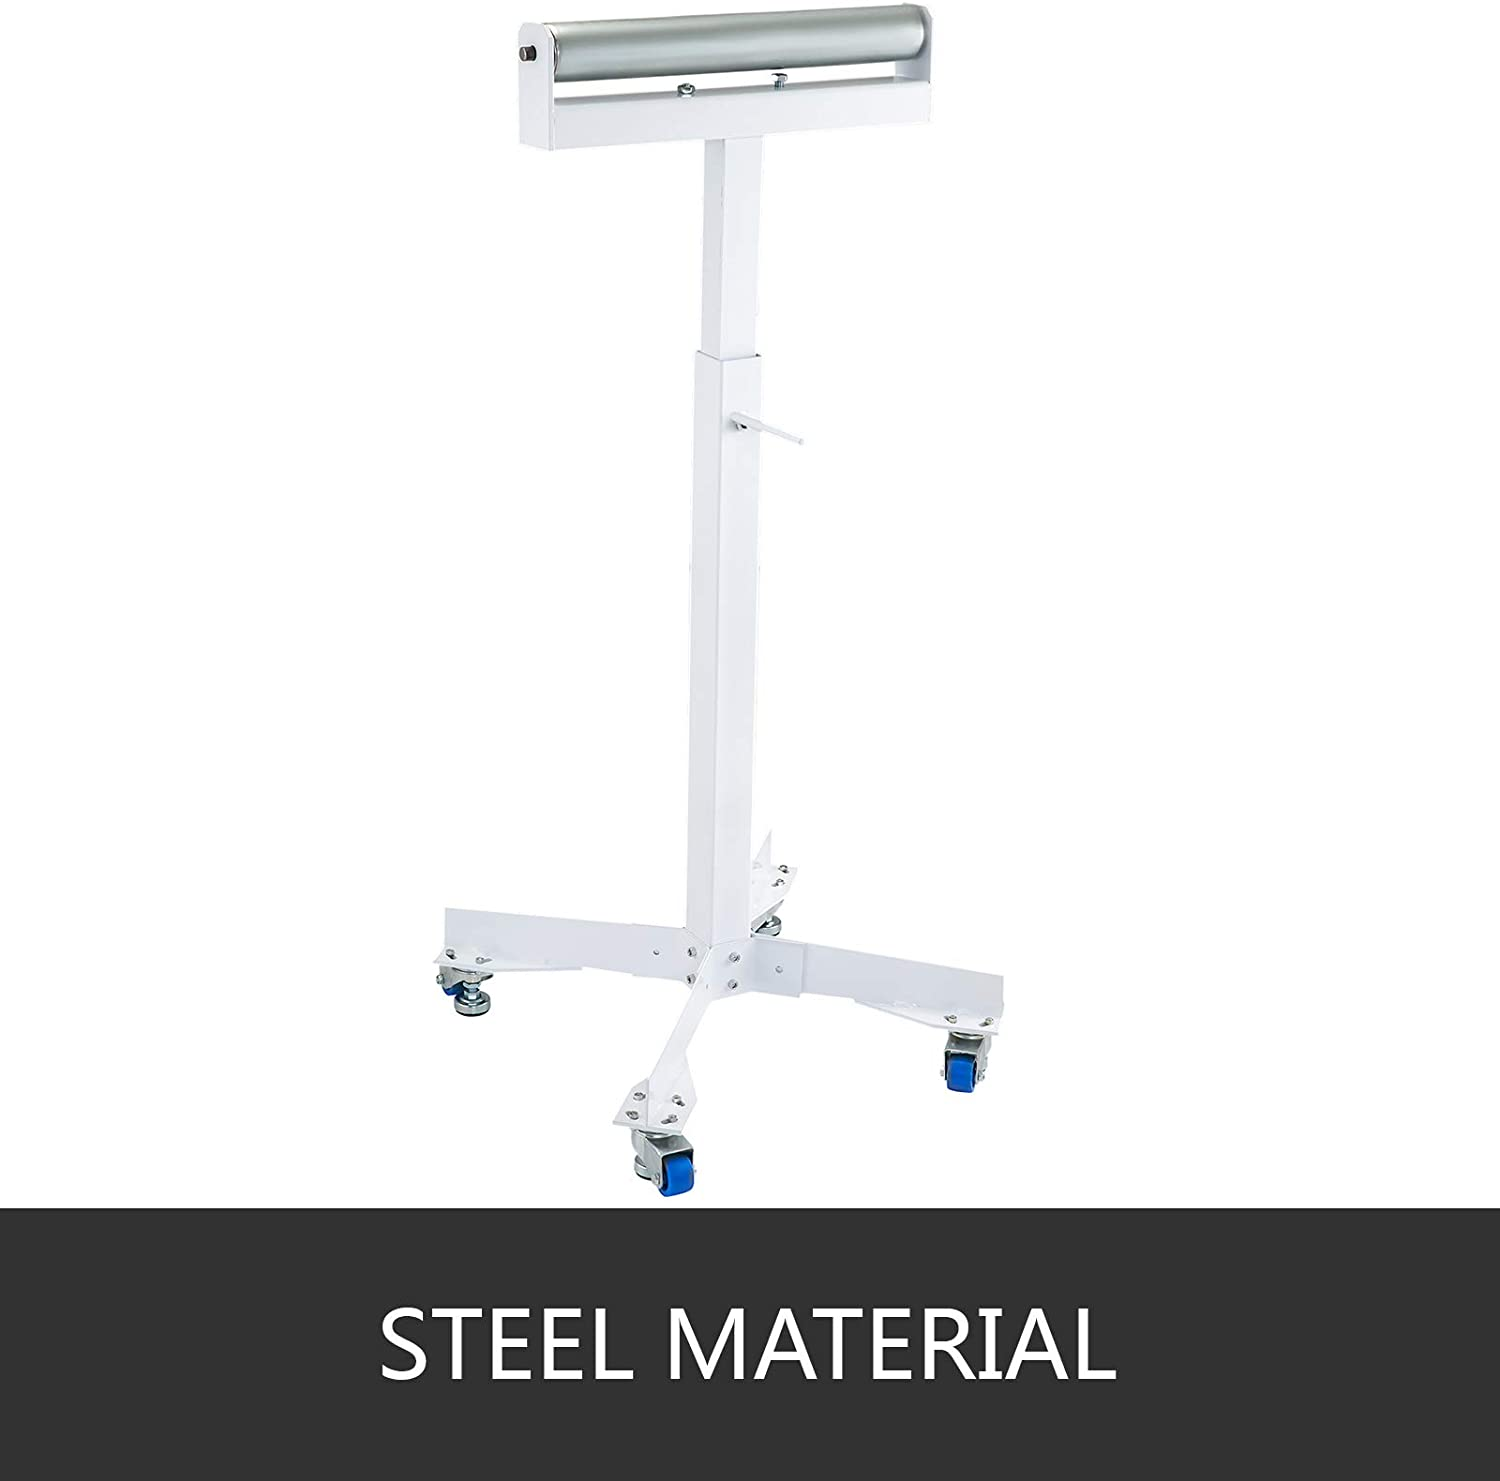 BestEquip 500LBS Capacity White Roller Table Tools Stand Adjustable Bench 28 to 46 Inch Roller Stand with Wedge Lock and Non-Skid Casters